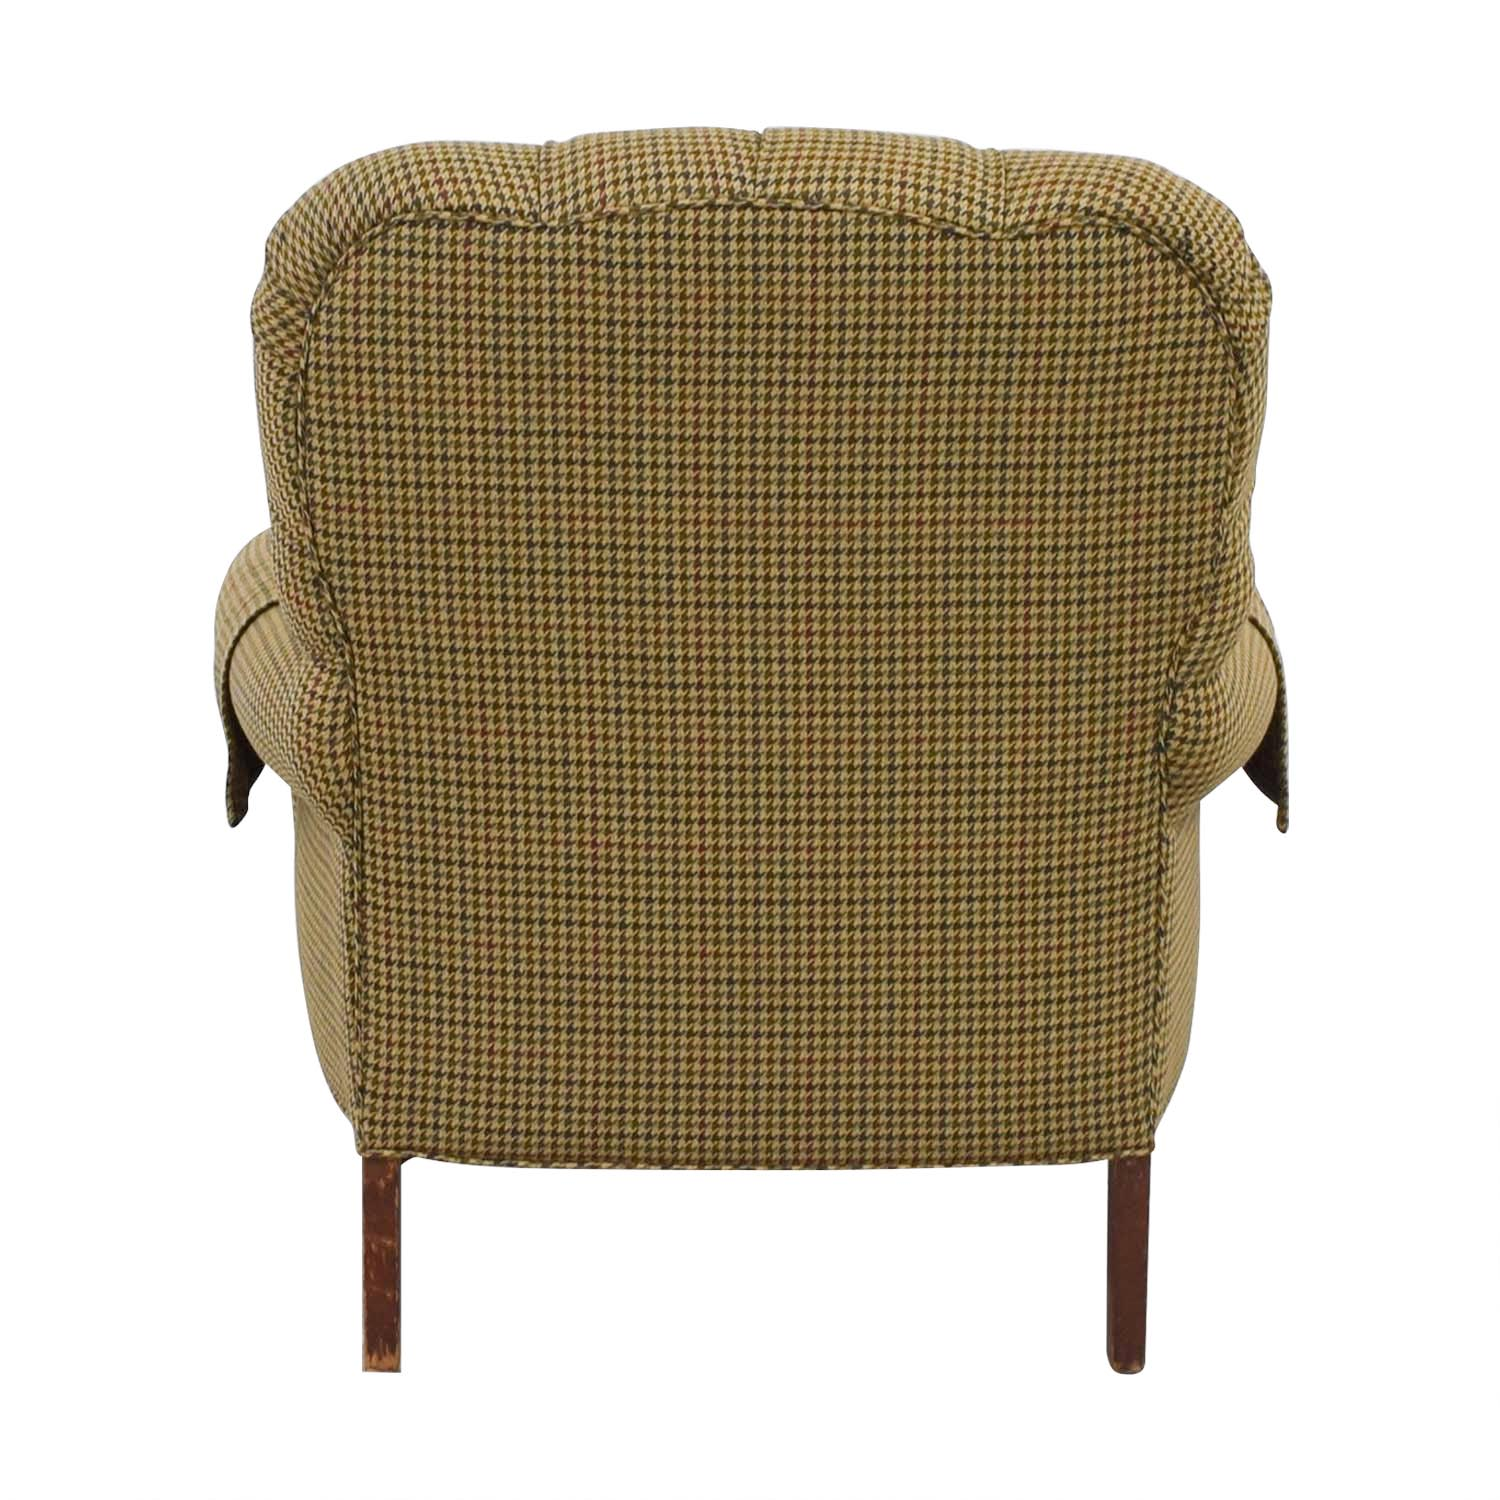 Designer Chairs Used 90 Off Designer Houndstooth Tufted Accent Chair Chairs